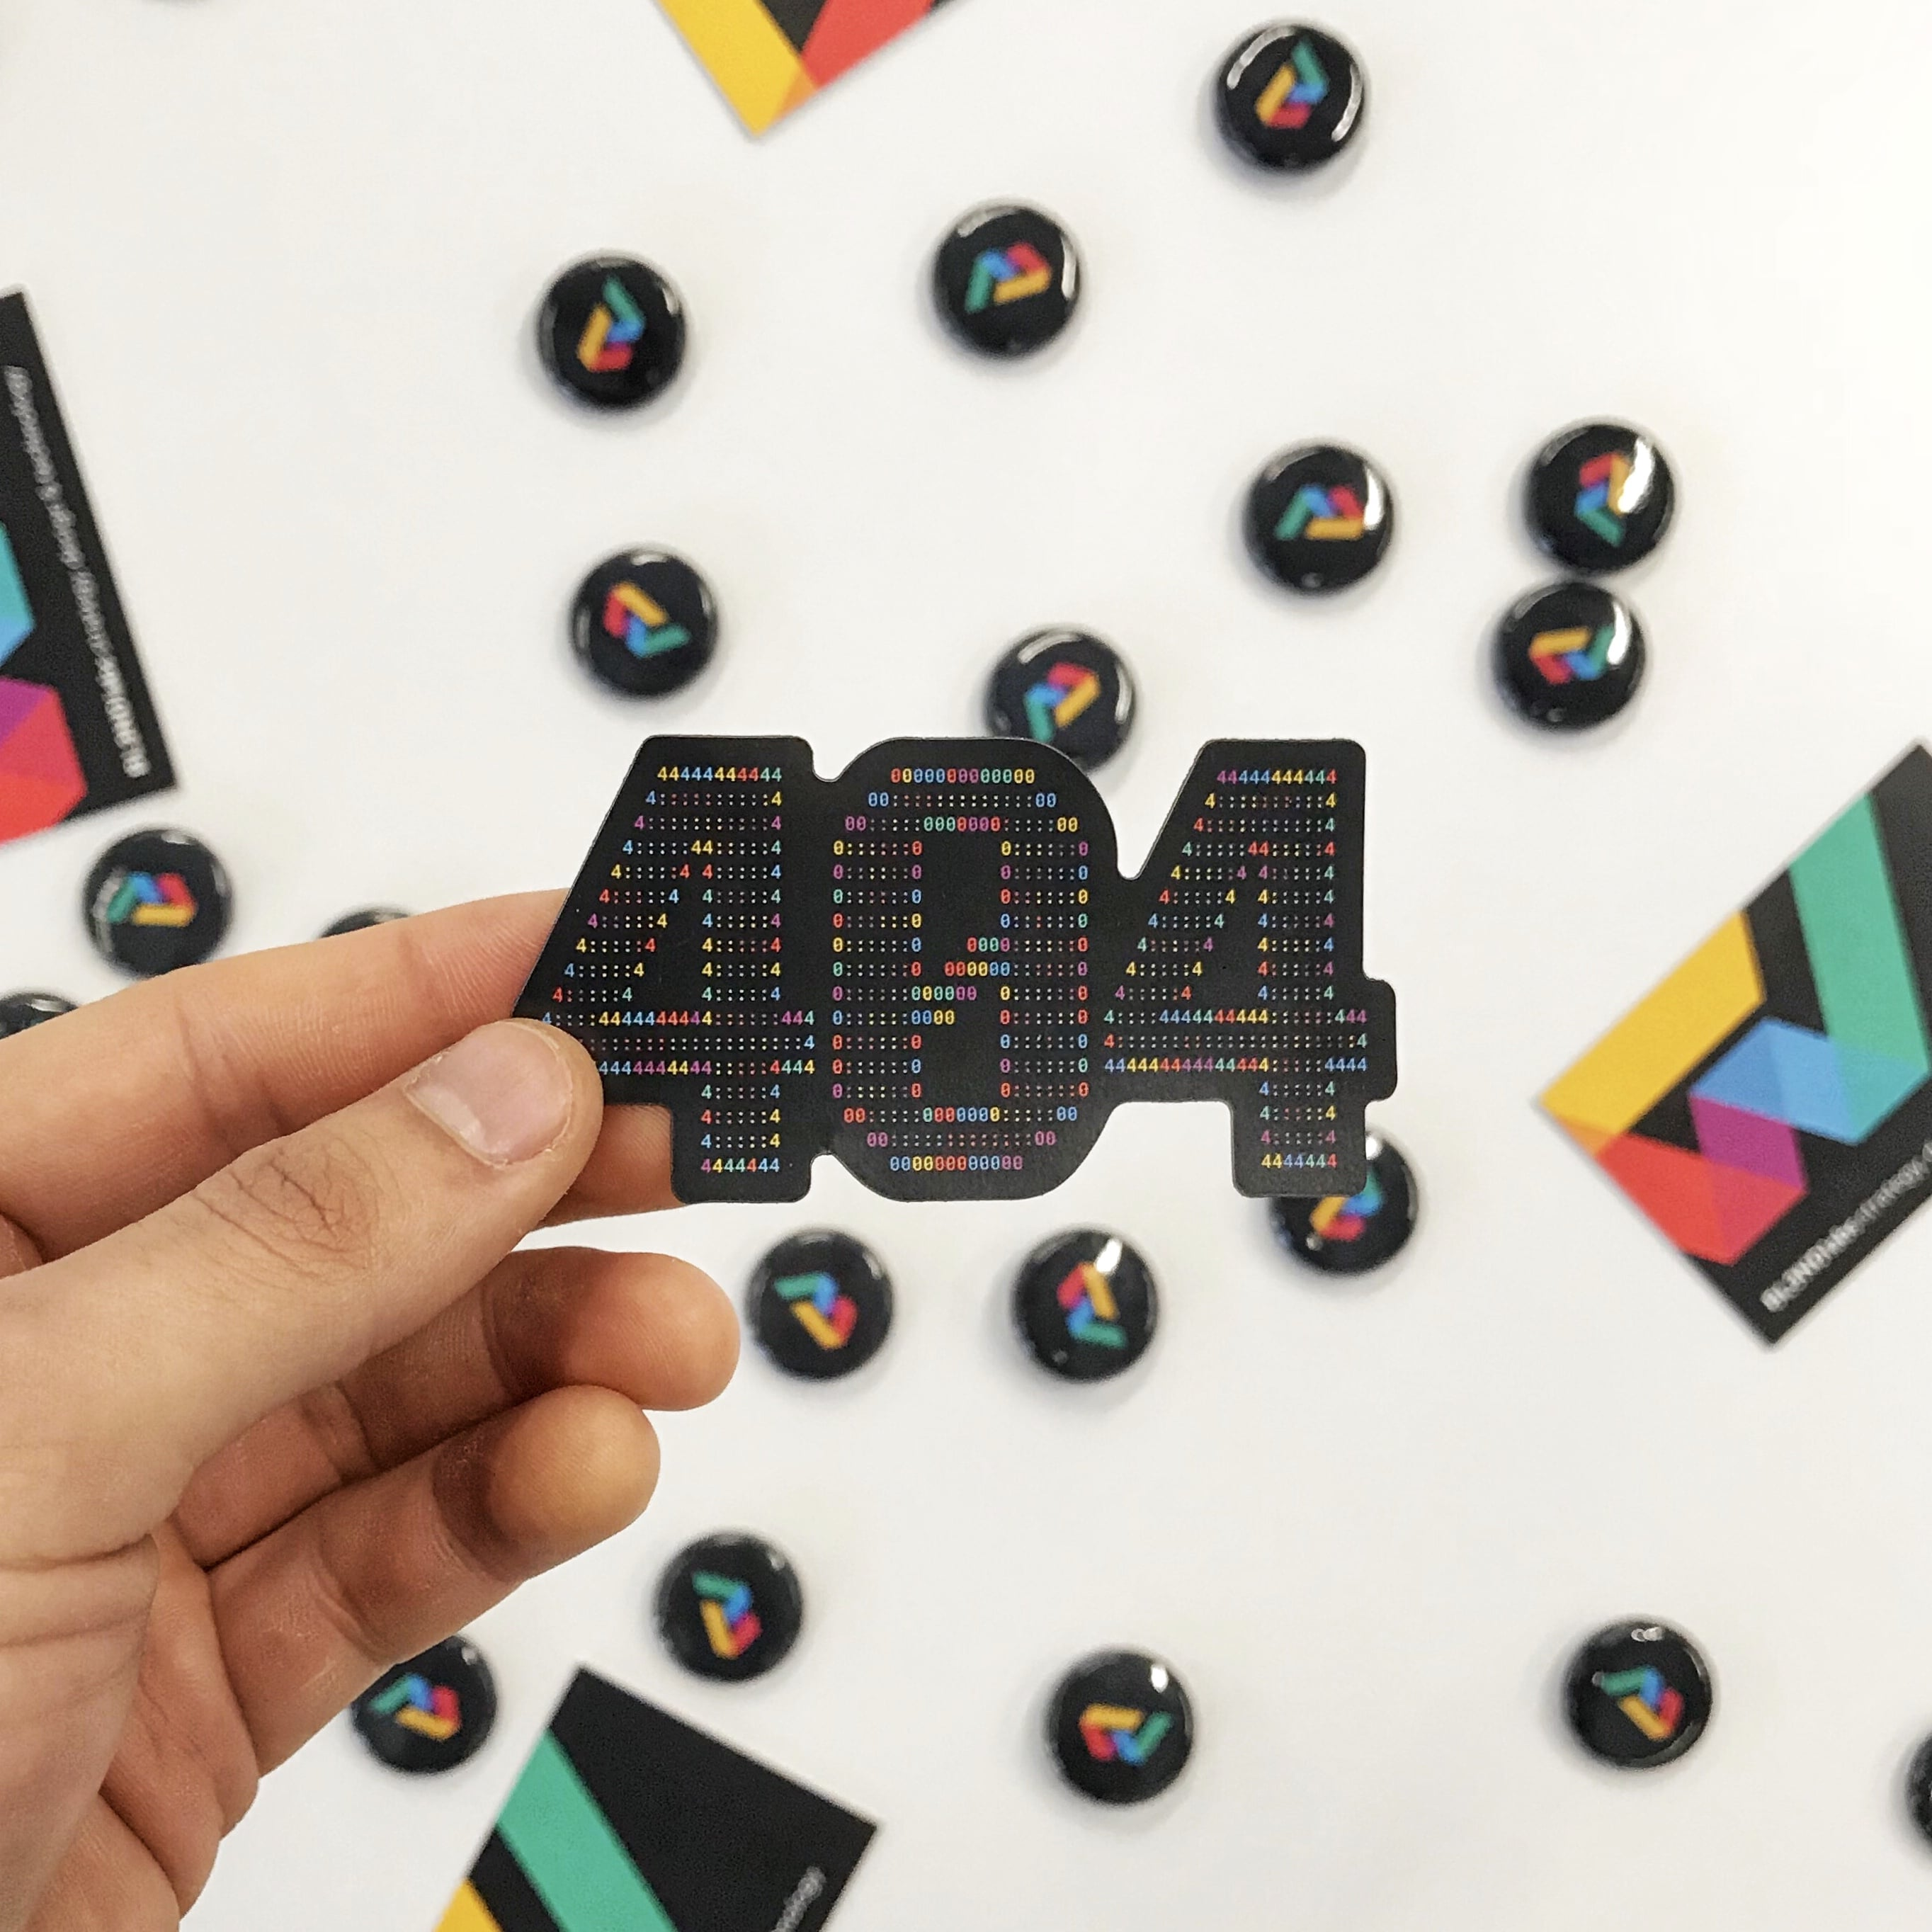 BL3NDlabs 404 Sticker and Pins